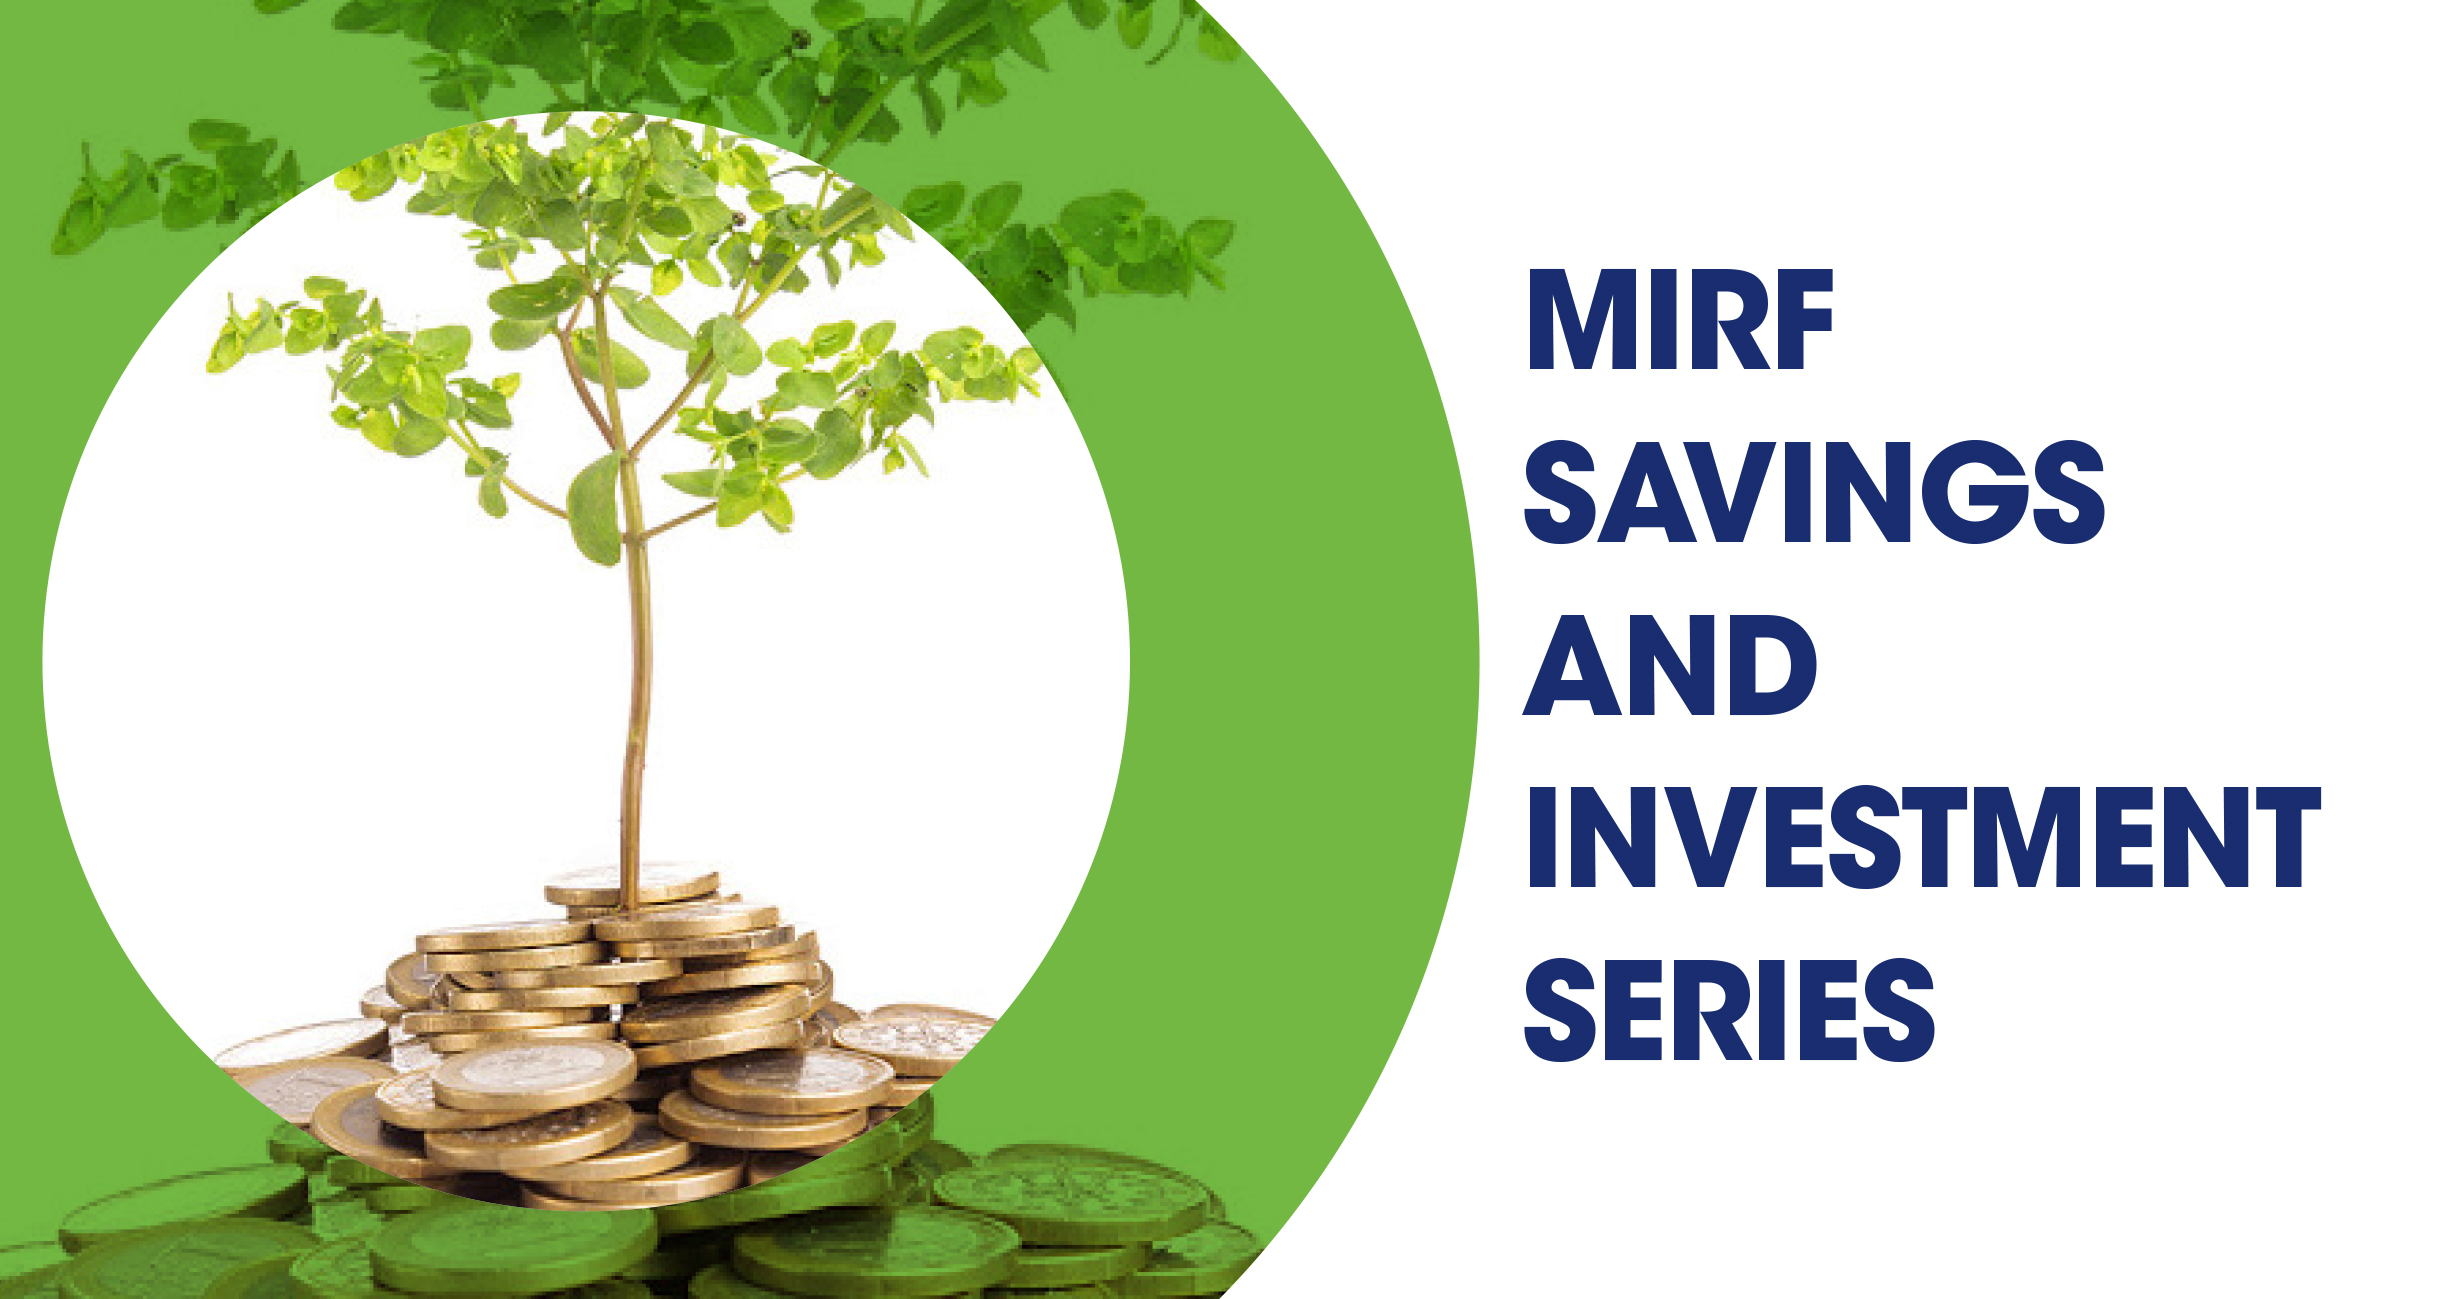 MIRF Savings and Investment Series